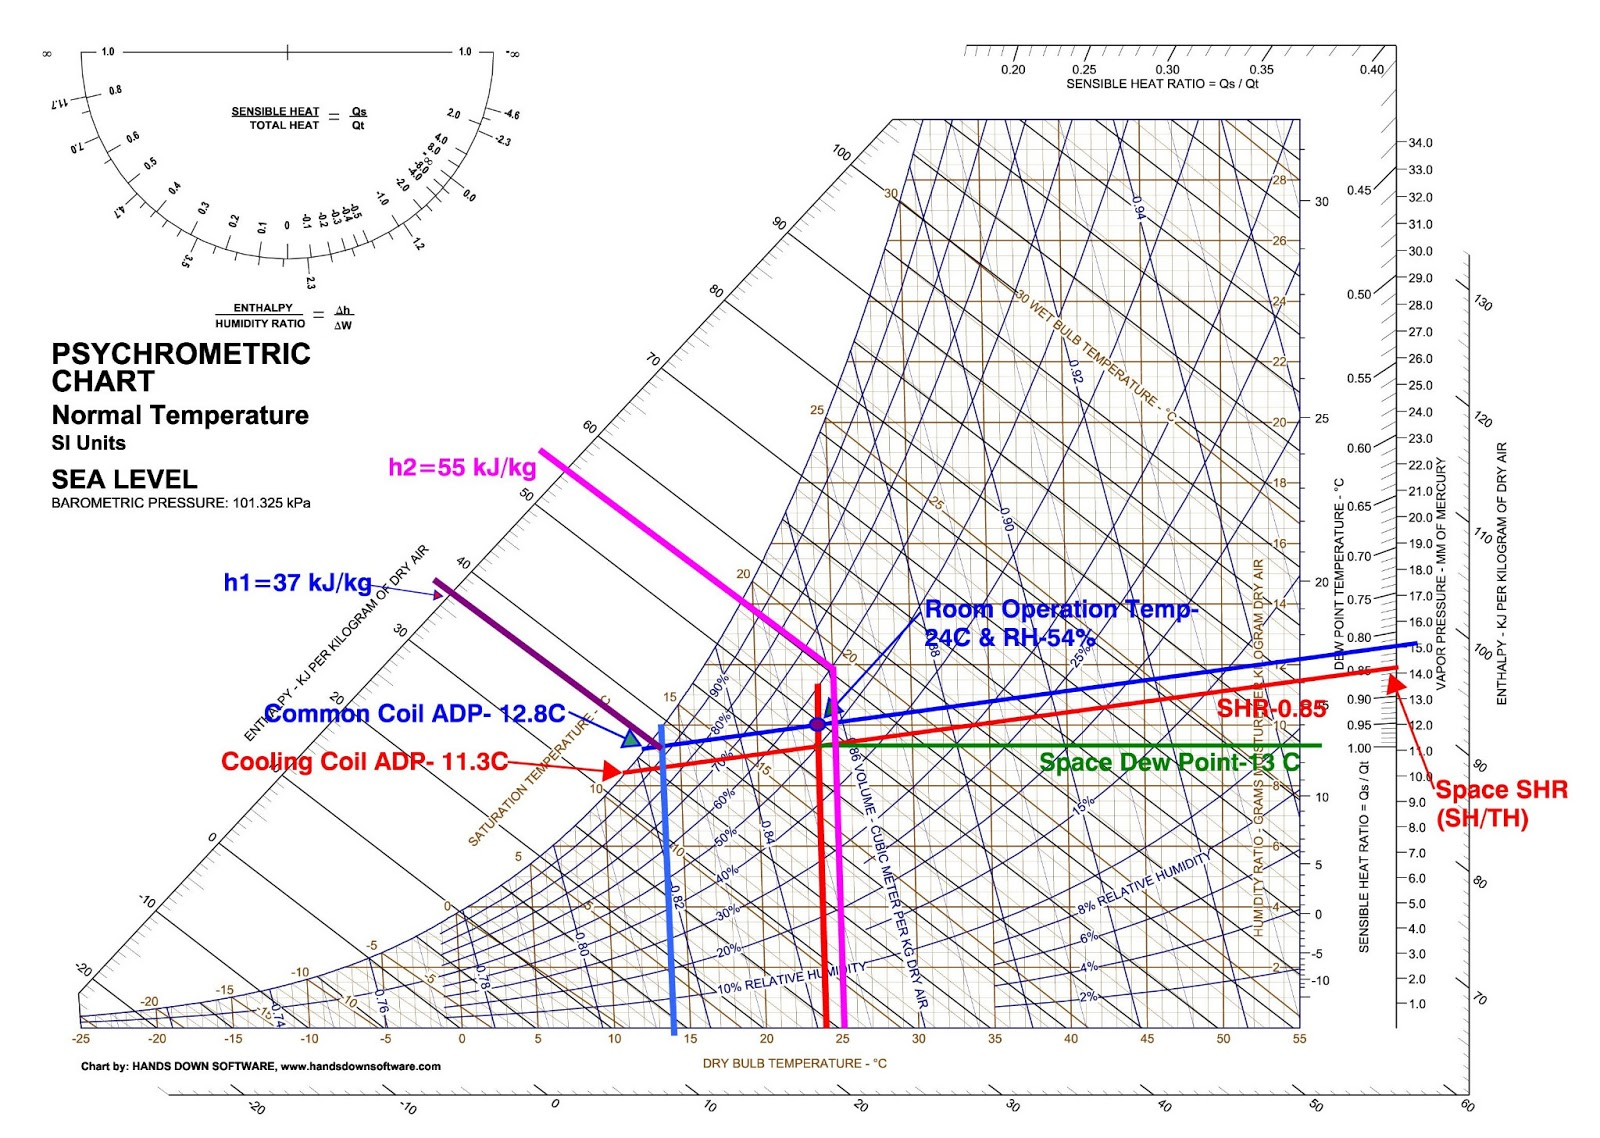 psychrometric chart reading Psychrometric charts are used to read a variety of fluid properties about an air water mixture when first exposed to them they can be hard to read, so i dec.